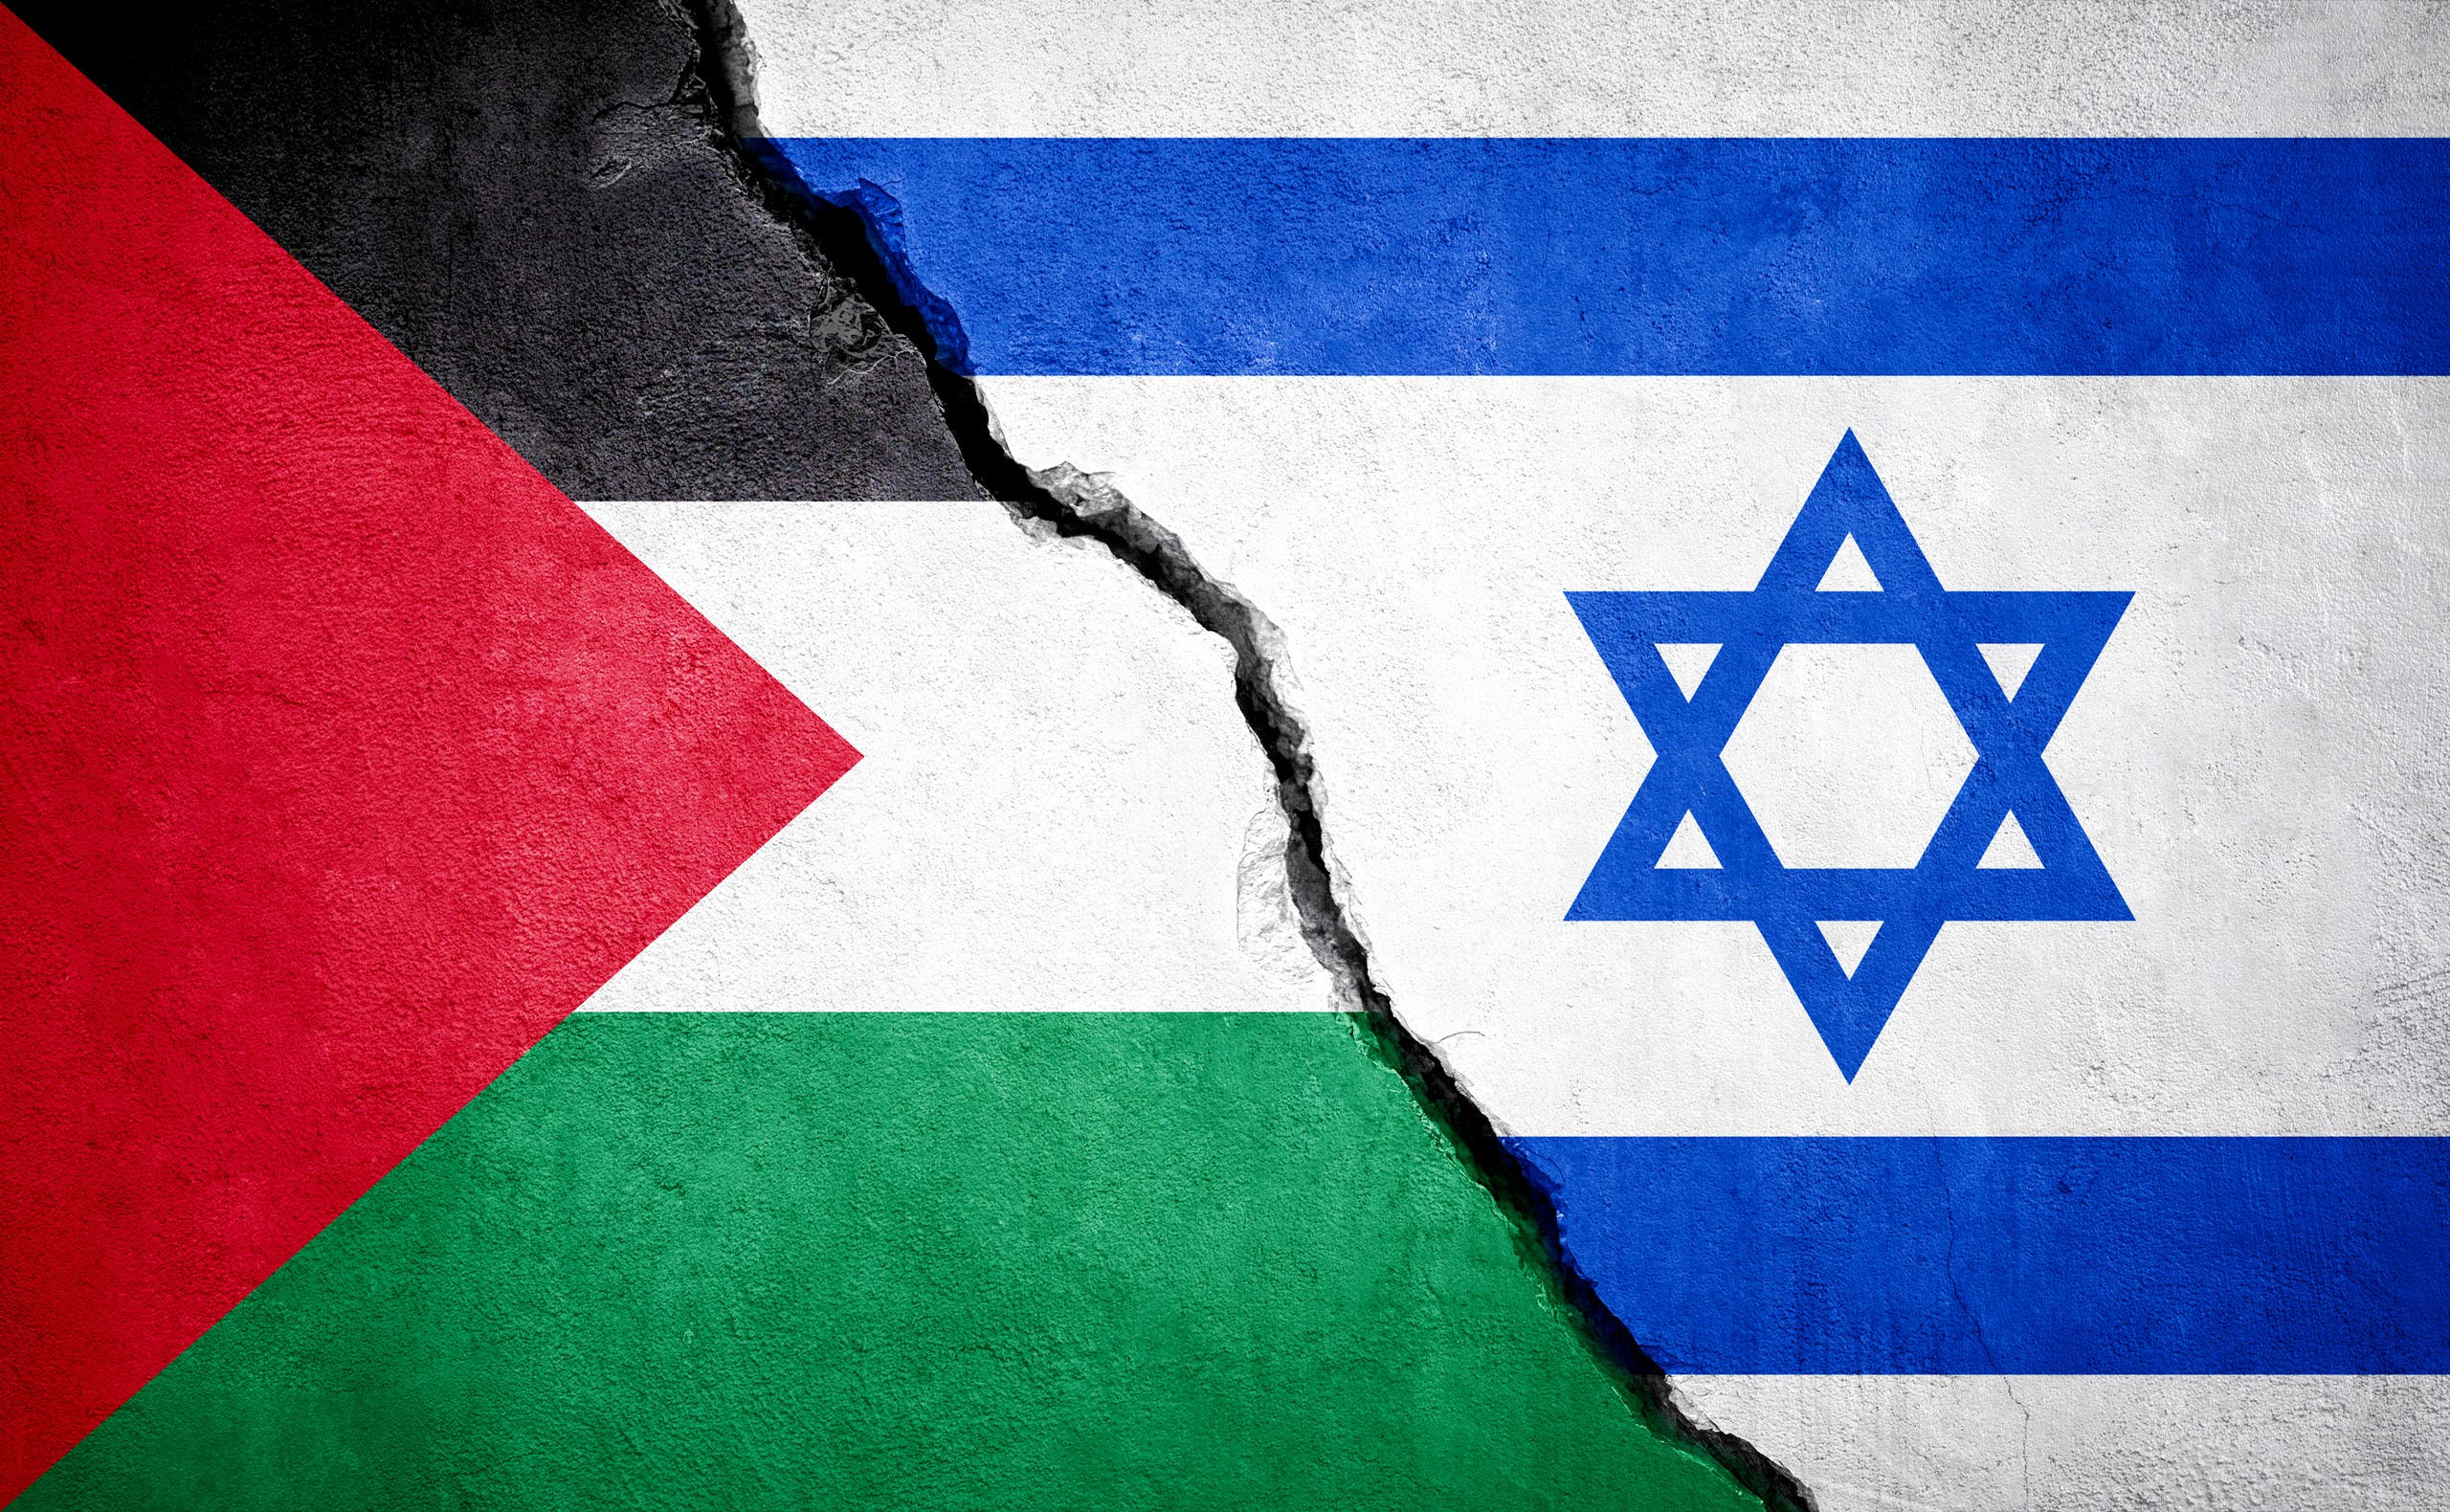 Palestine and Israel conflict. (File photo)